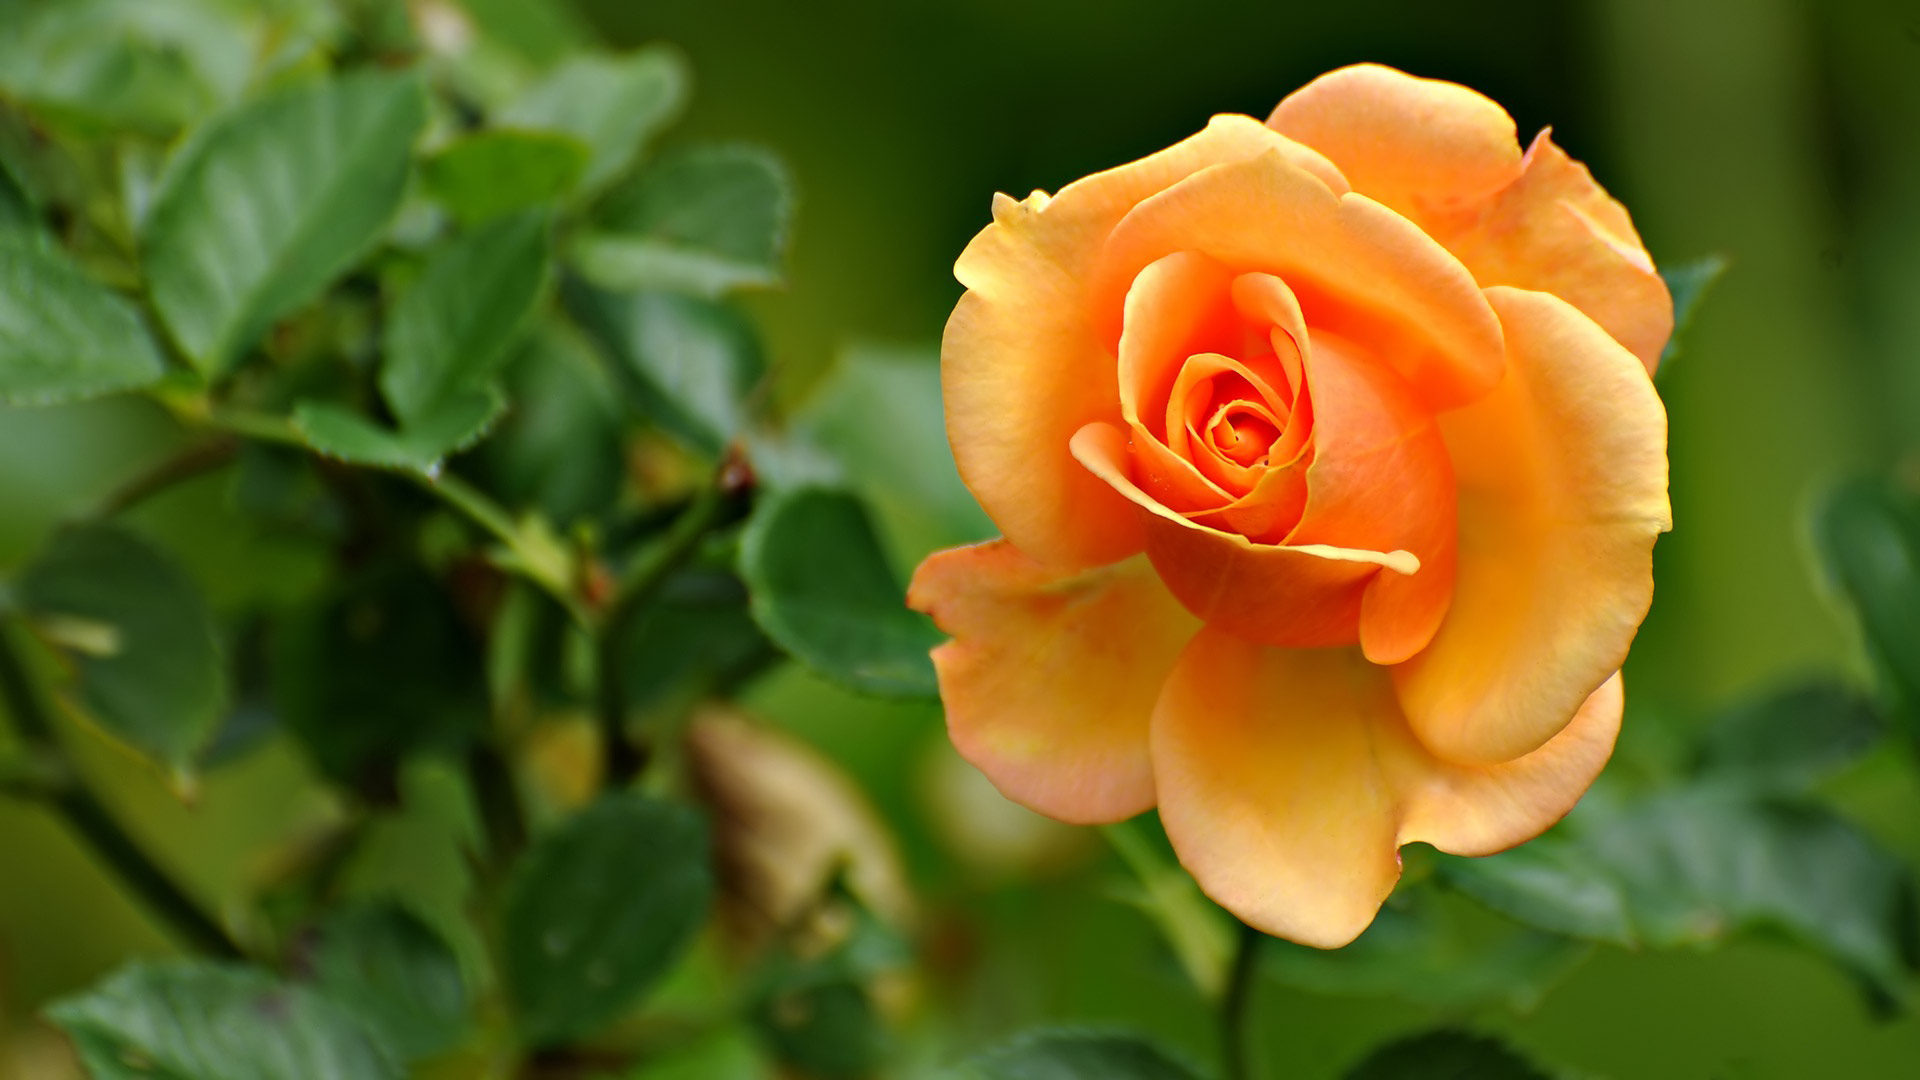 Orange Rose Desktop Wallpaper Most HD Wallpapers Pictures Desktop 1920x1080